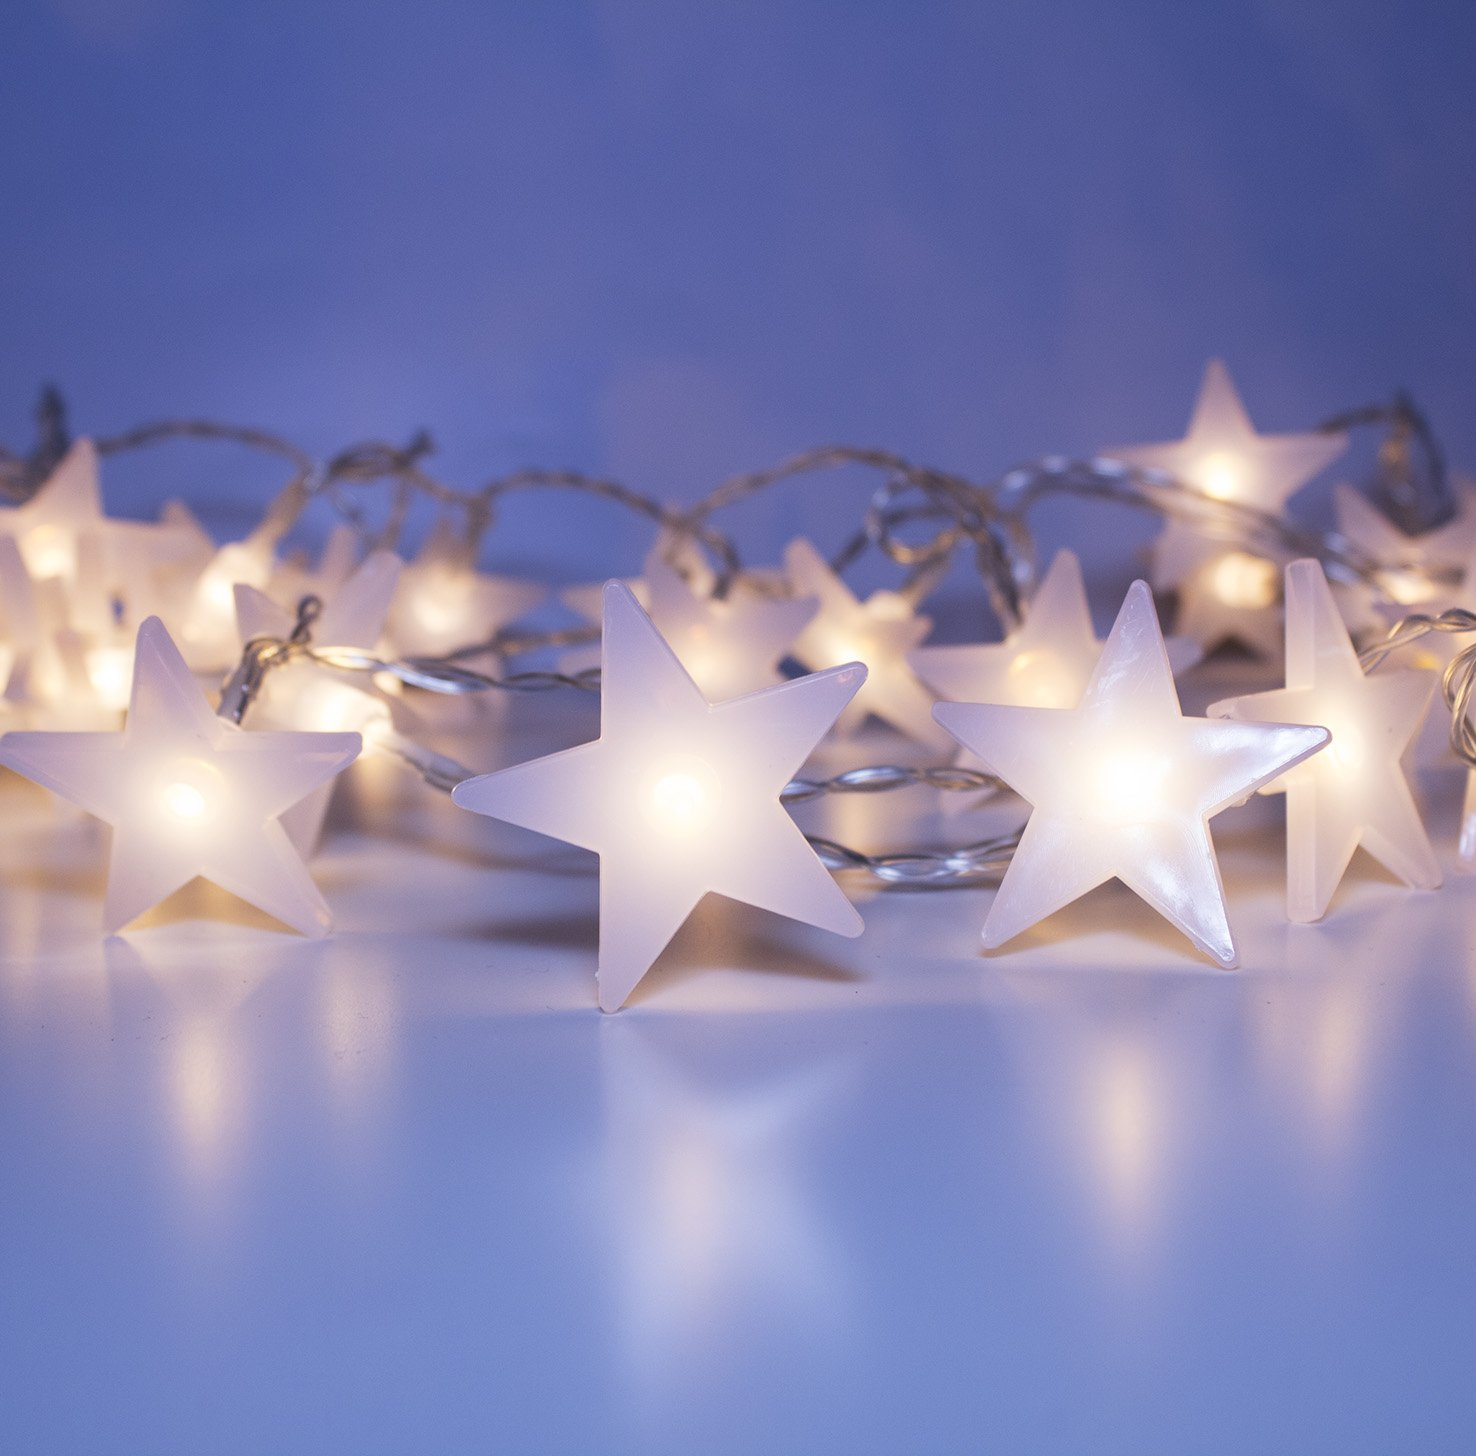 LuxLumi Starry & Glossy String Lights with Warm White 50 LED Star Lights for Bedroom, Living Room, Teens, Kids, College Dorm, Home Décor, Party, Bridal Shower, Baby Shower & Kitchen (18FT)